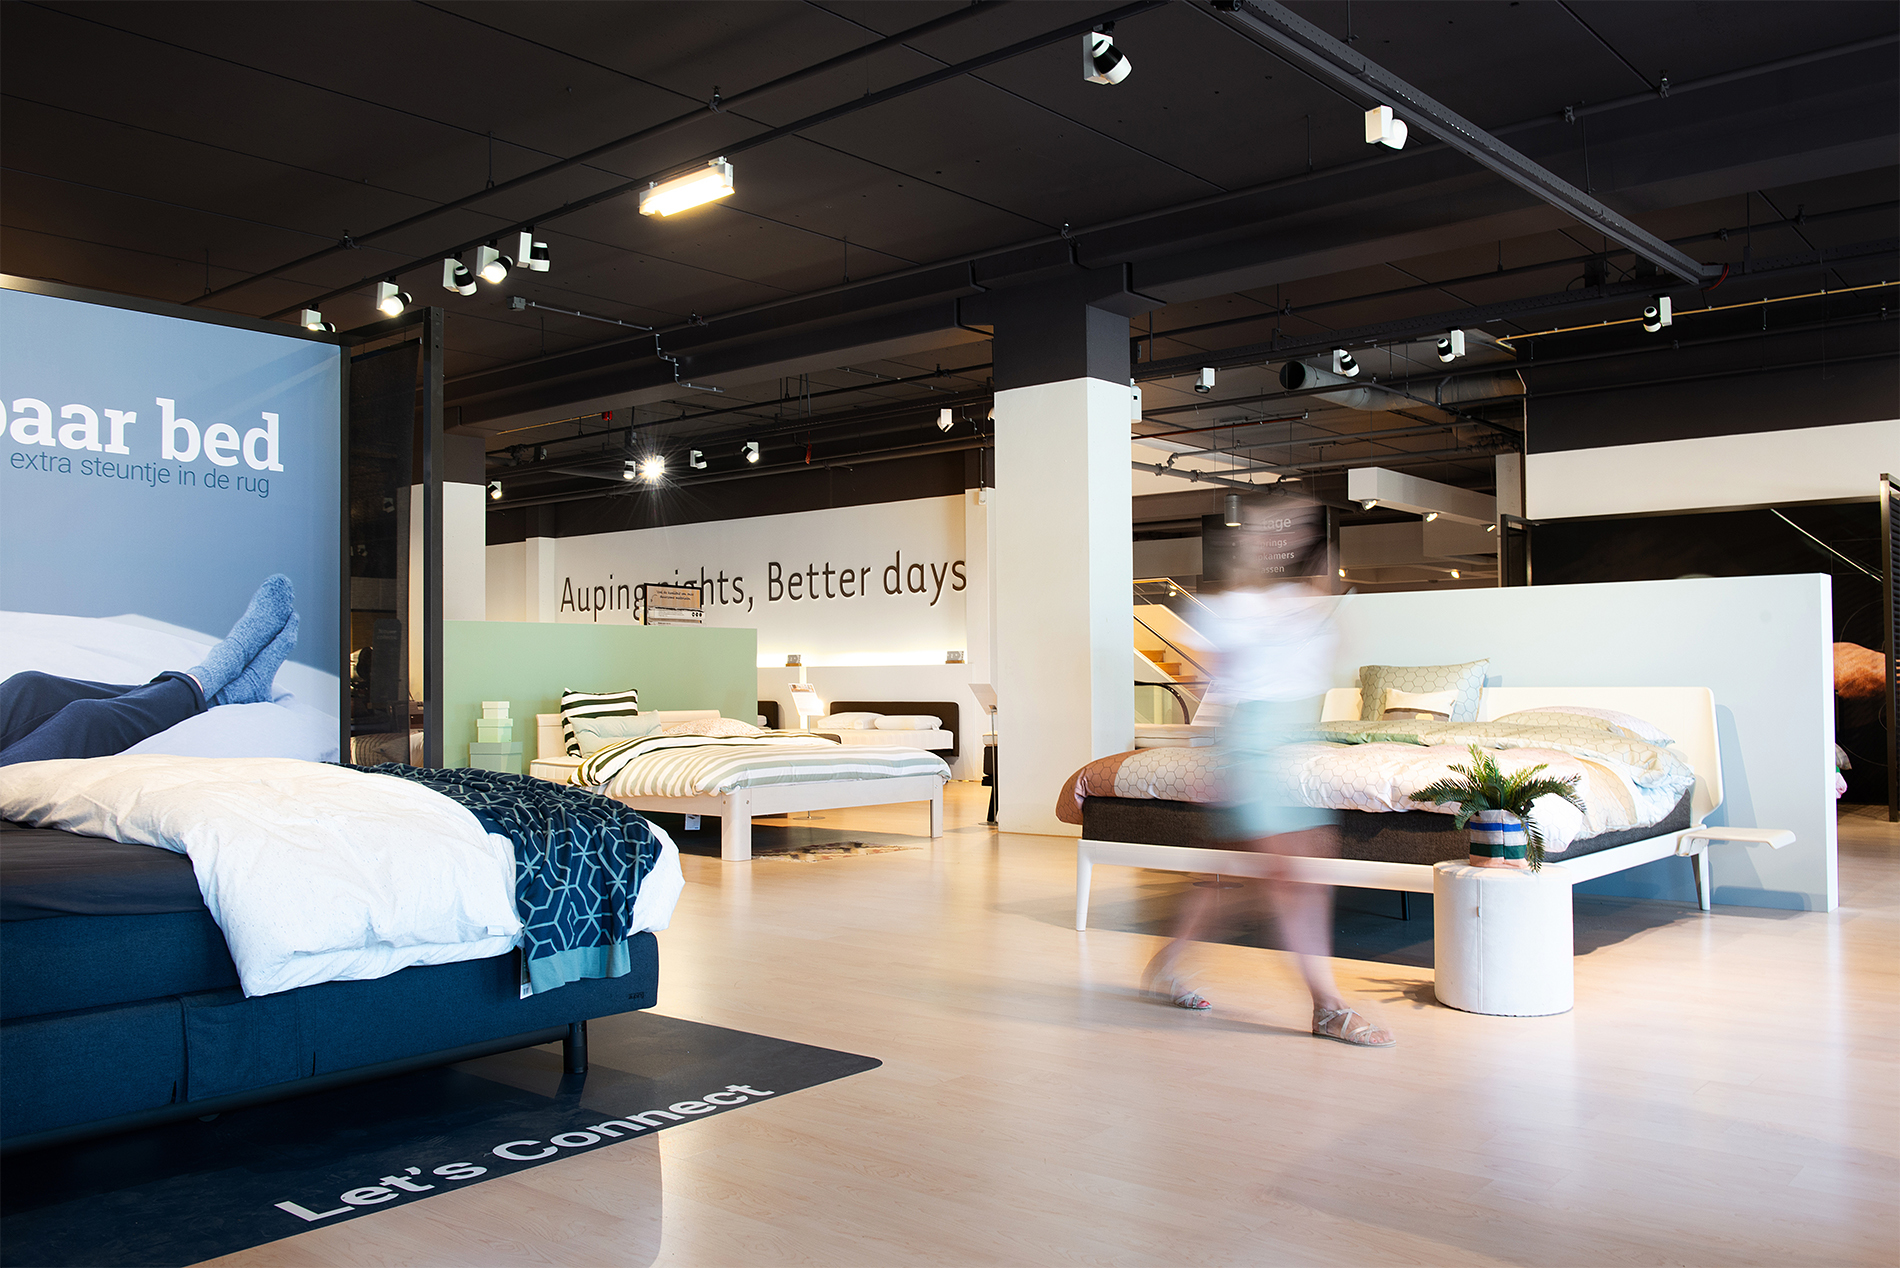 Auping Plaza Barendrecht – Natural Vita Talalay Latex Mattress Store in Barendrecht ZH